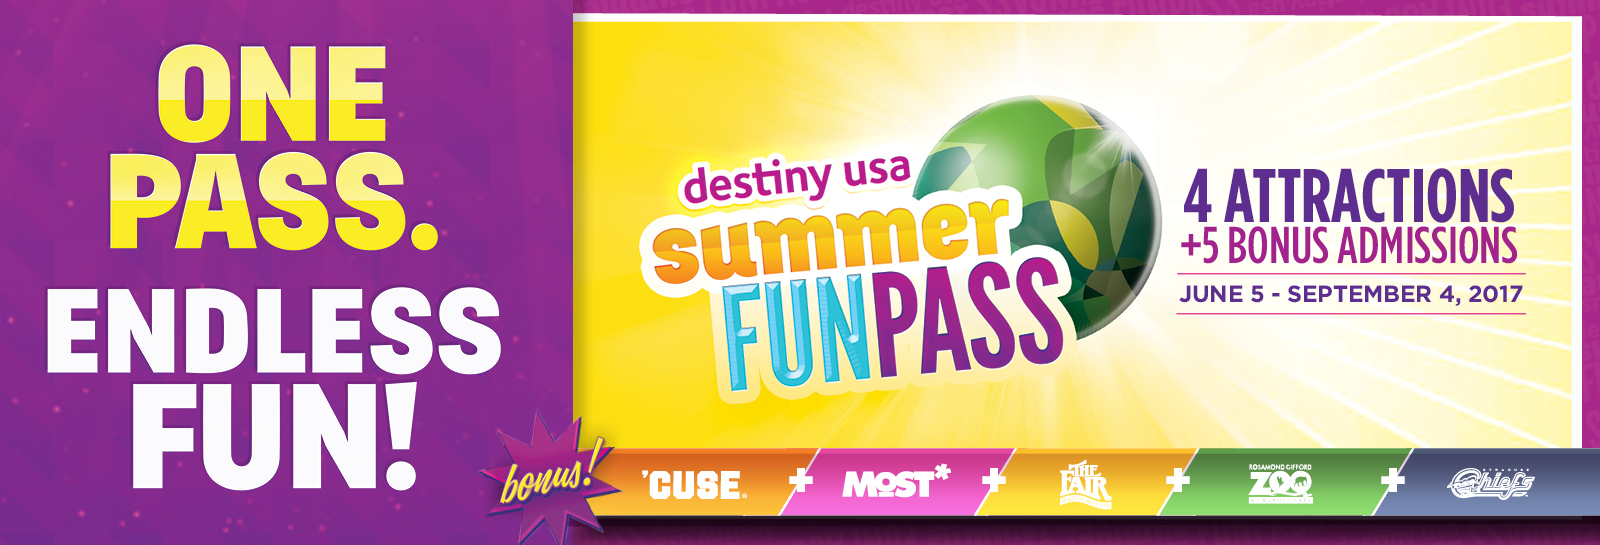 One Pass. Endless Fun! Destiny USA Summer Fun Pass. 4 Attractions + 5 Bonus Admissions. June 5 - September 4, 2017.